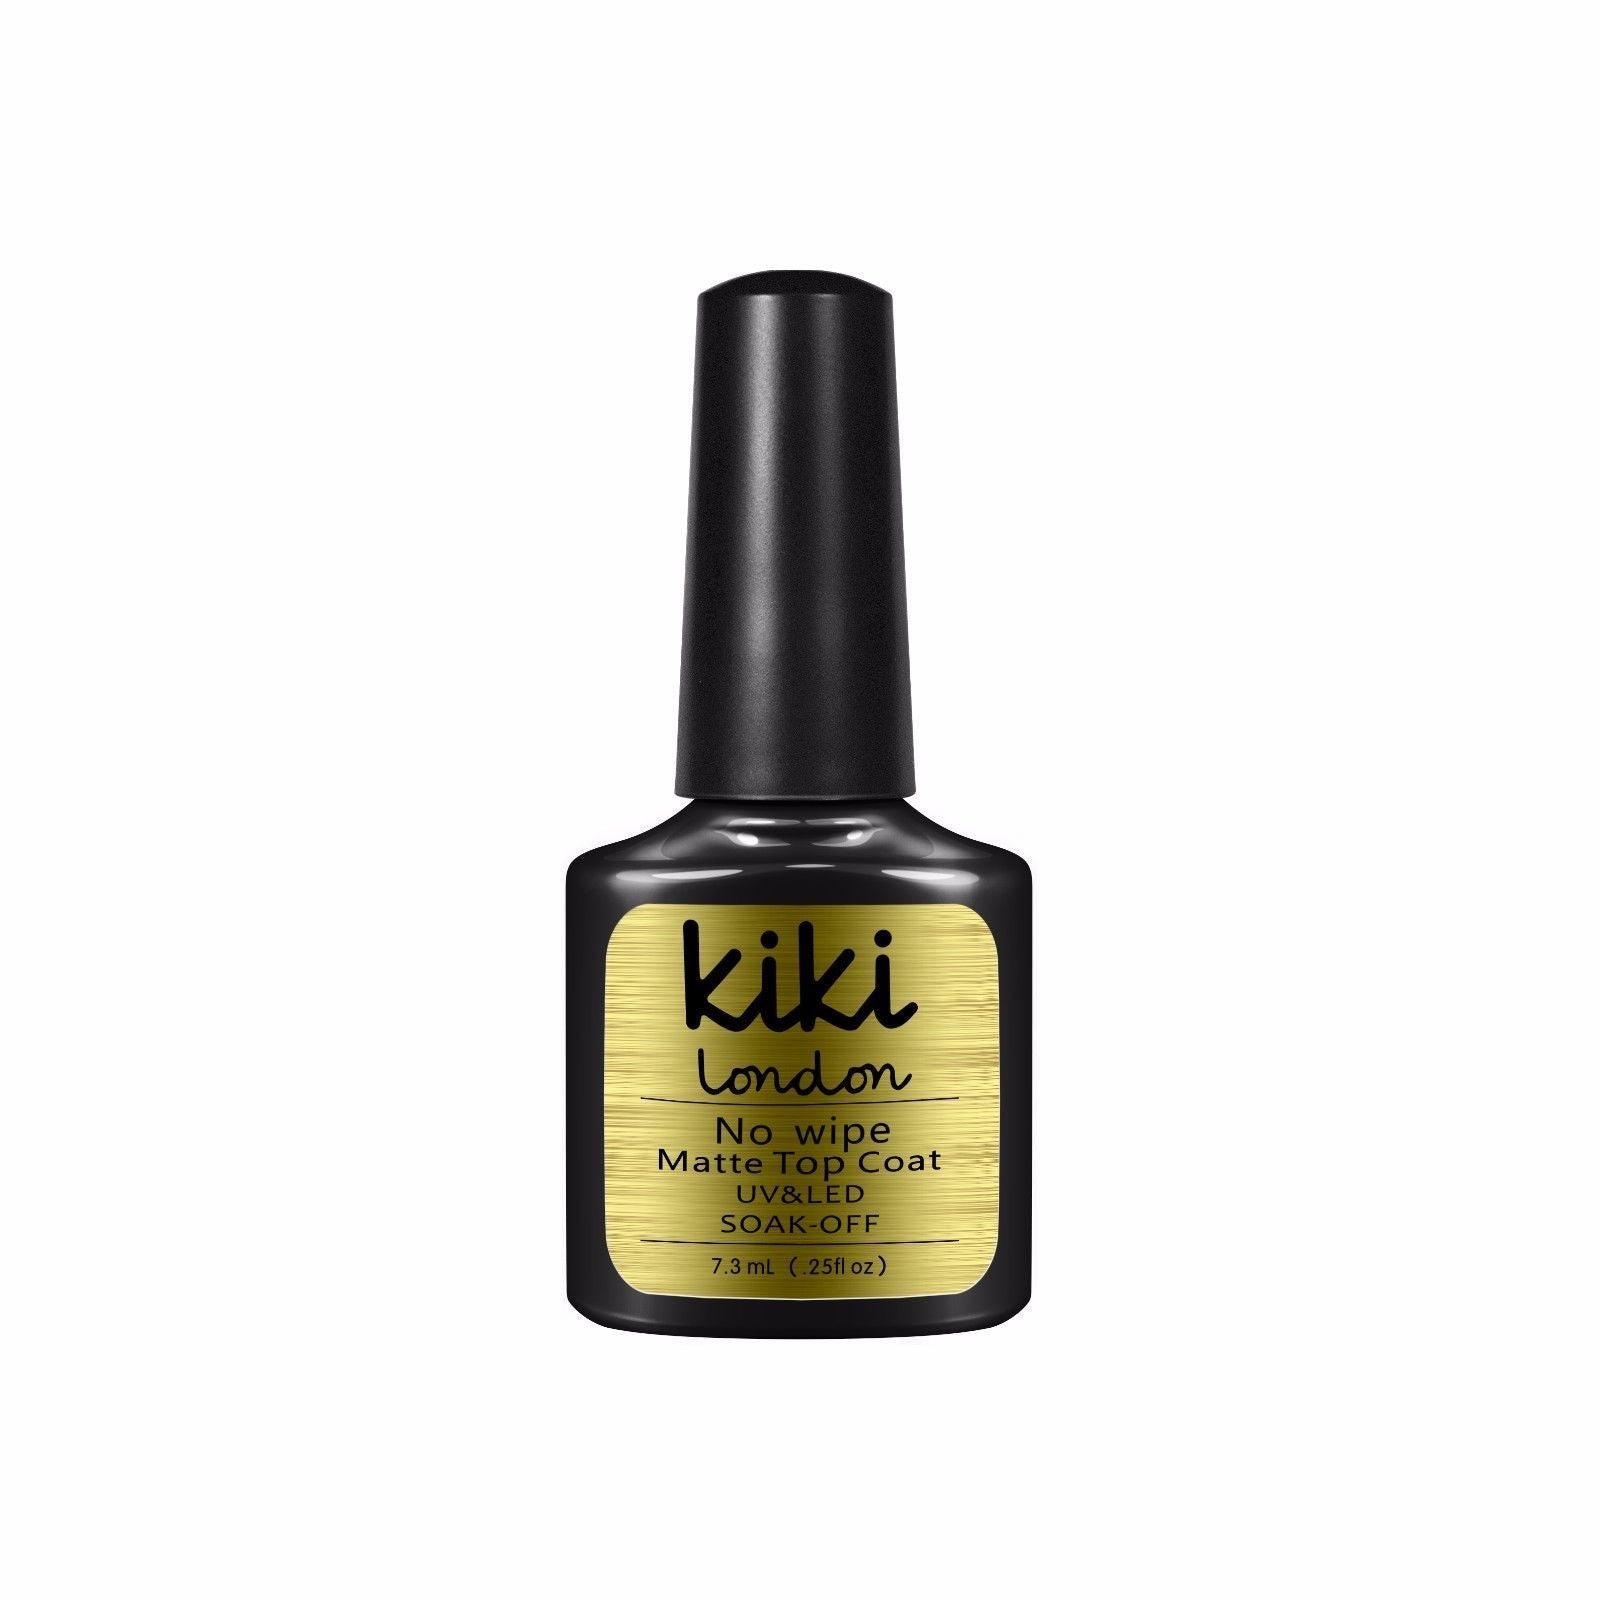 Matte Top Coat 7.3ml